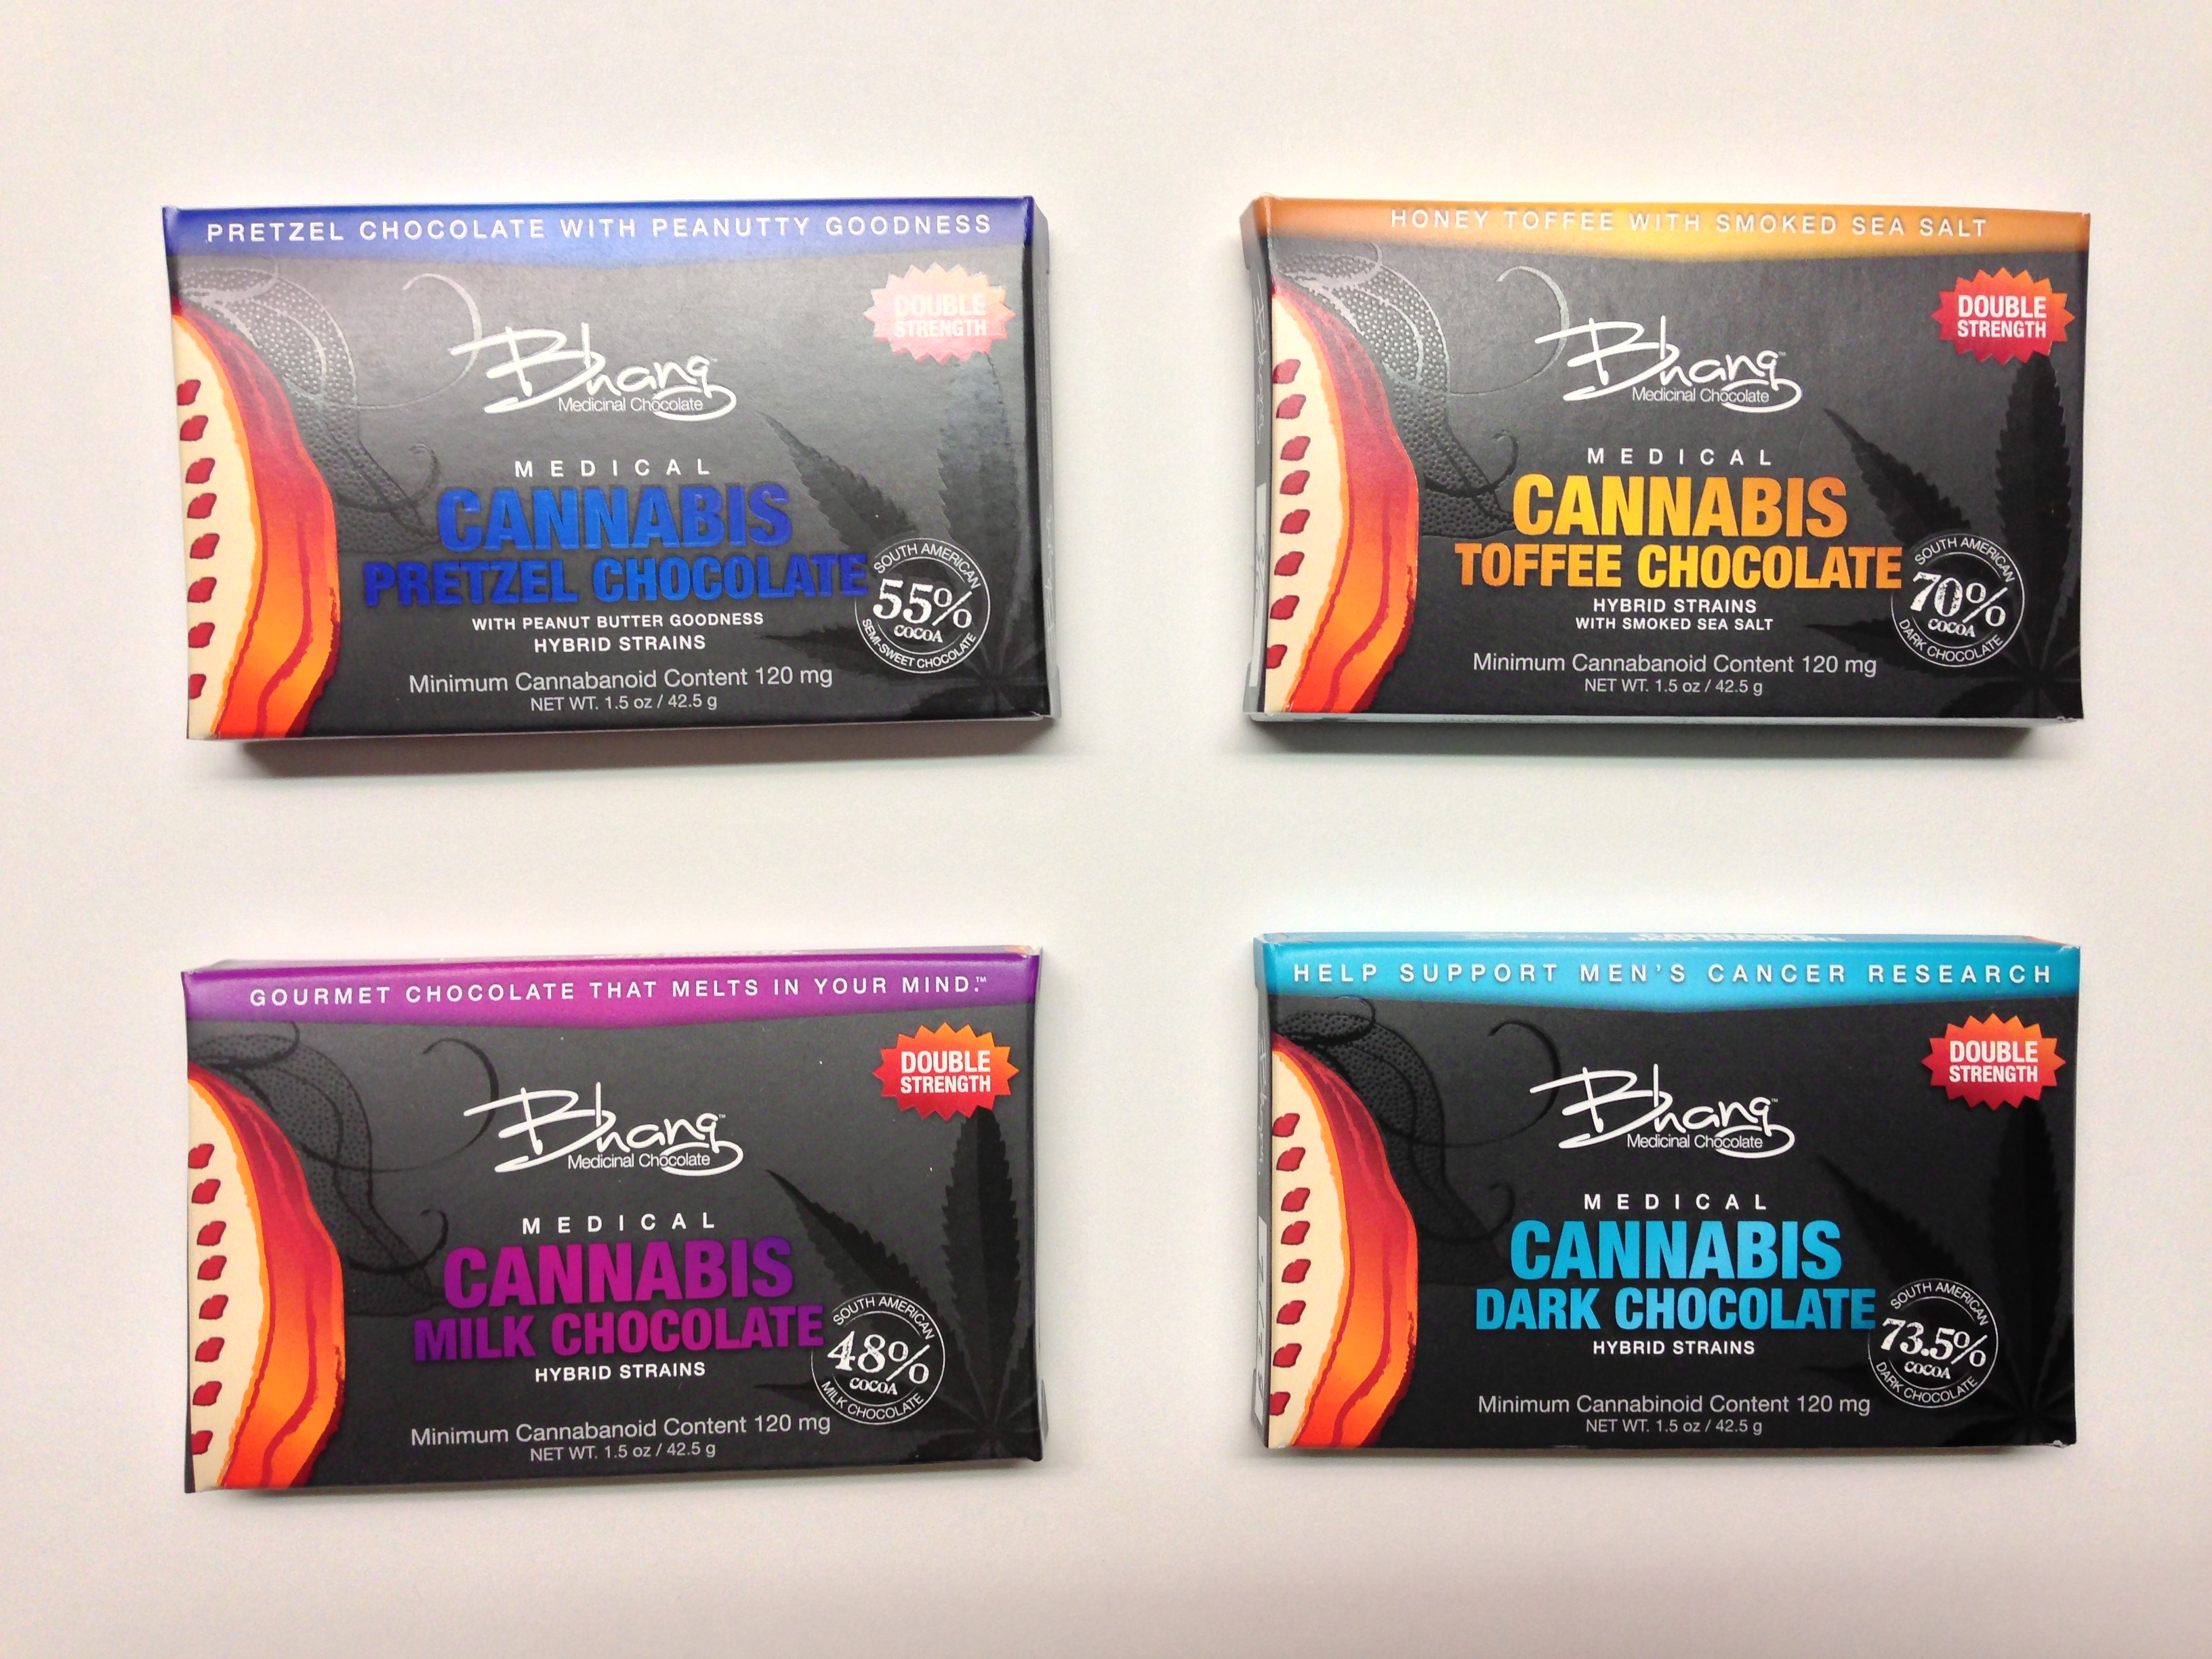 Bhang Chocolate Review Images - Reverse Search